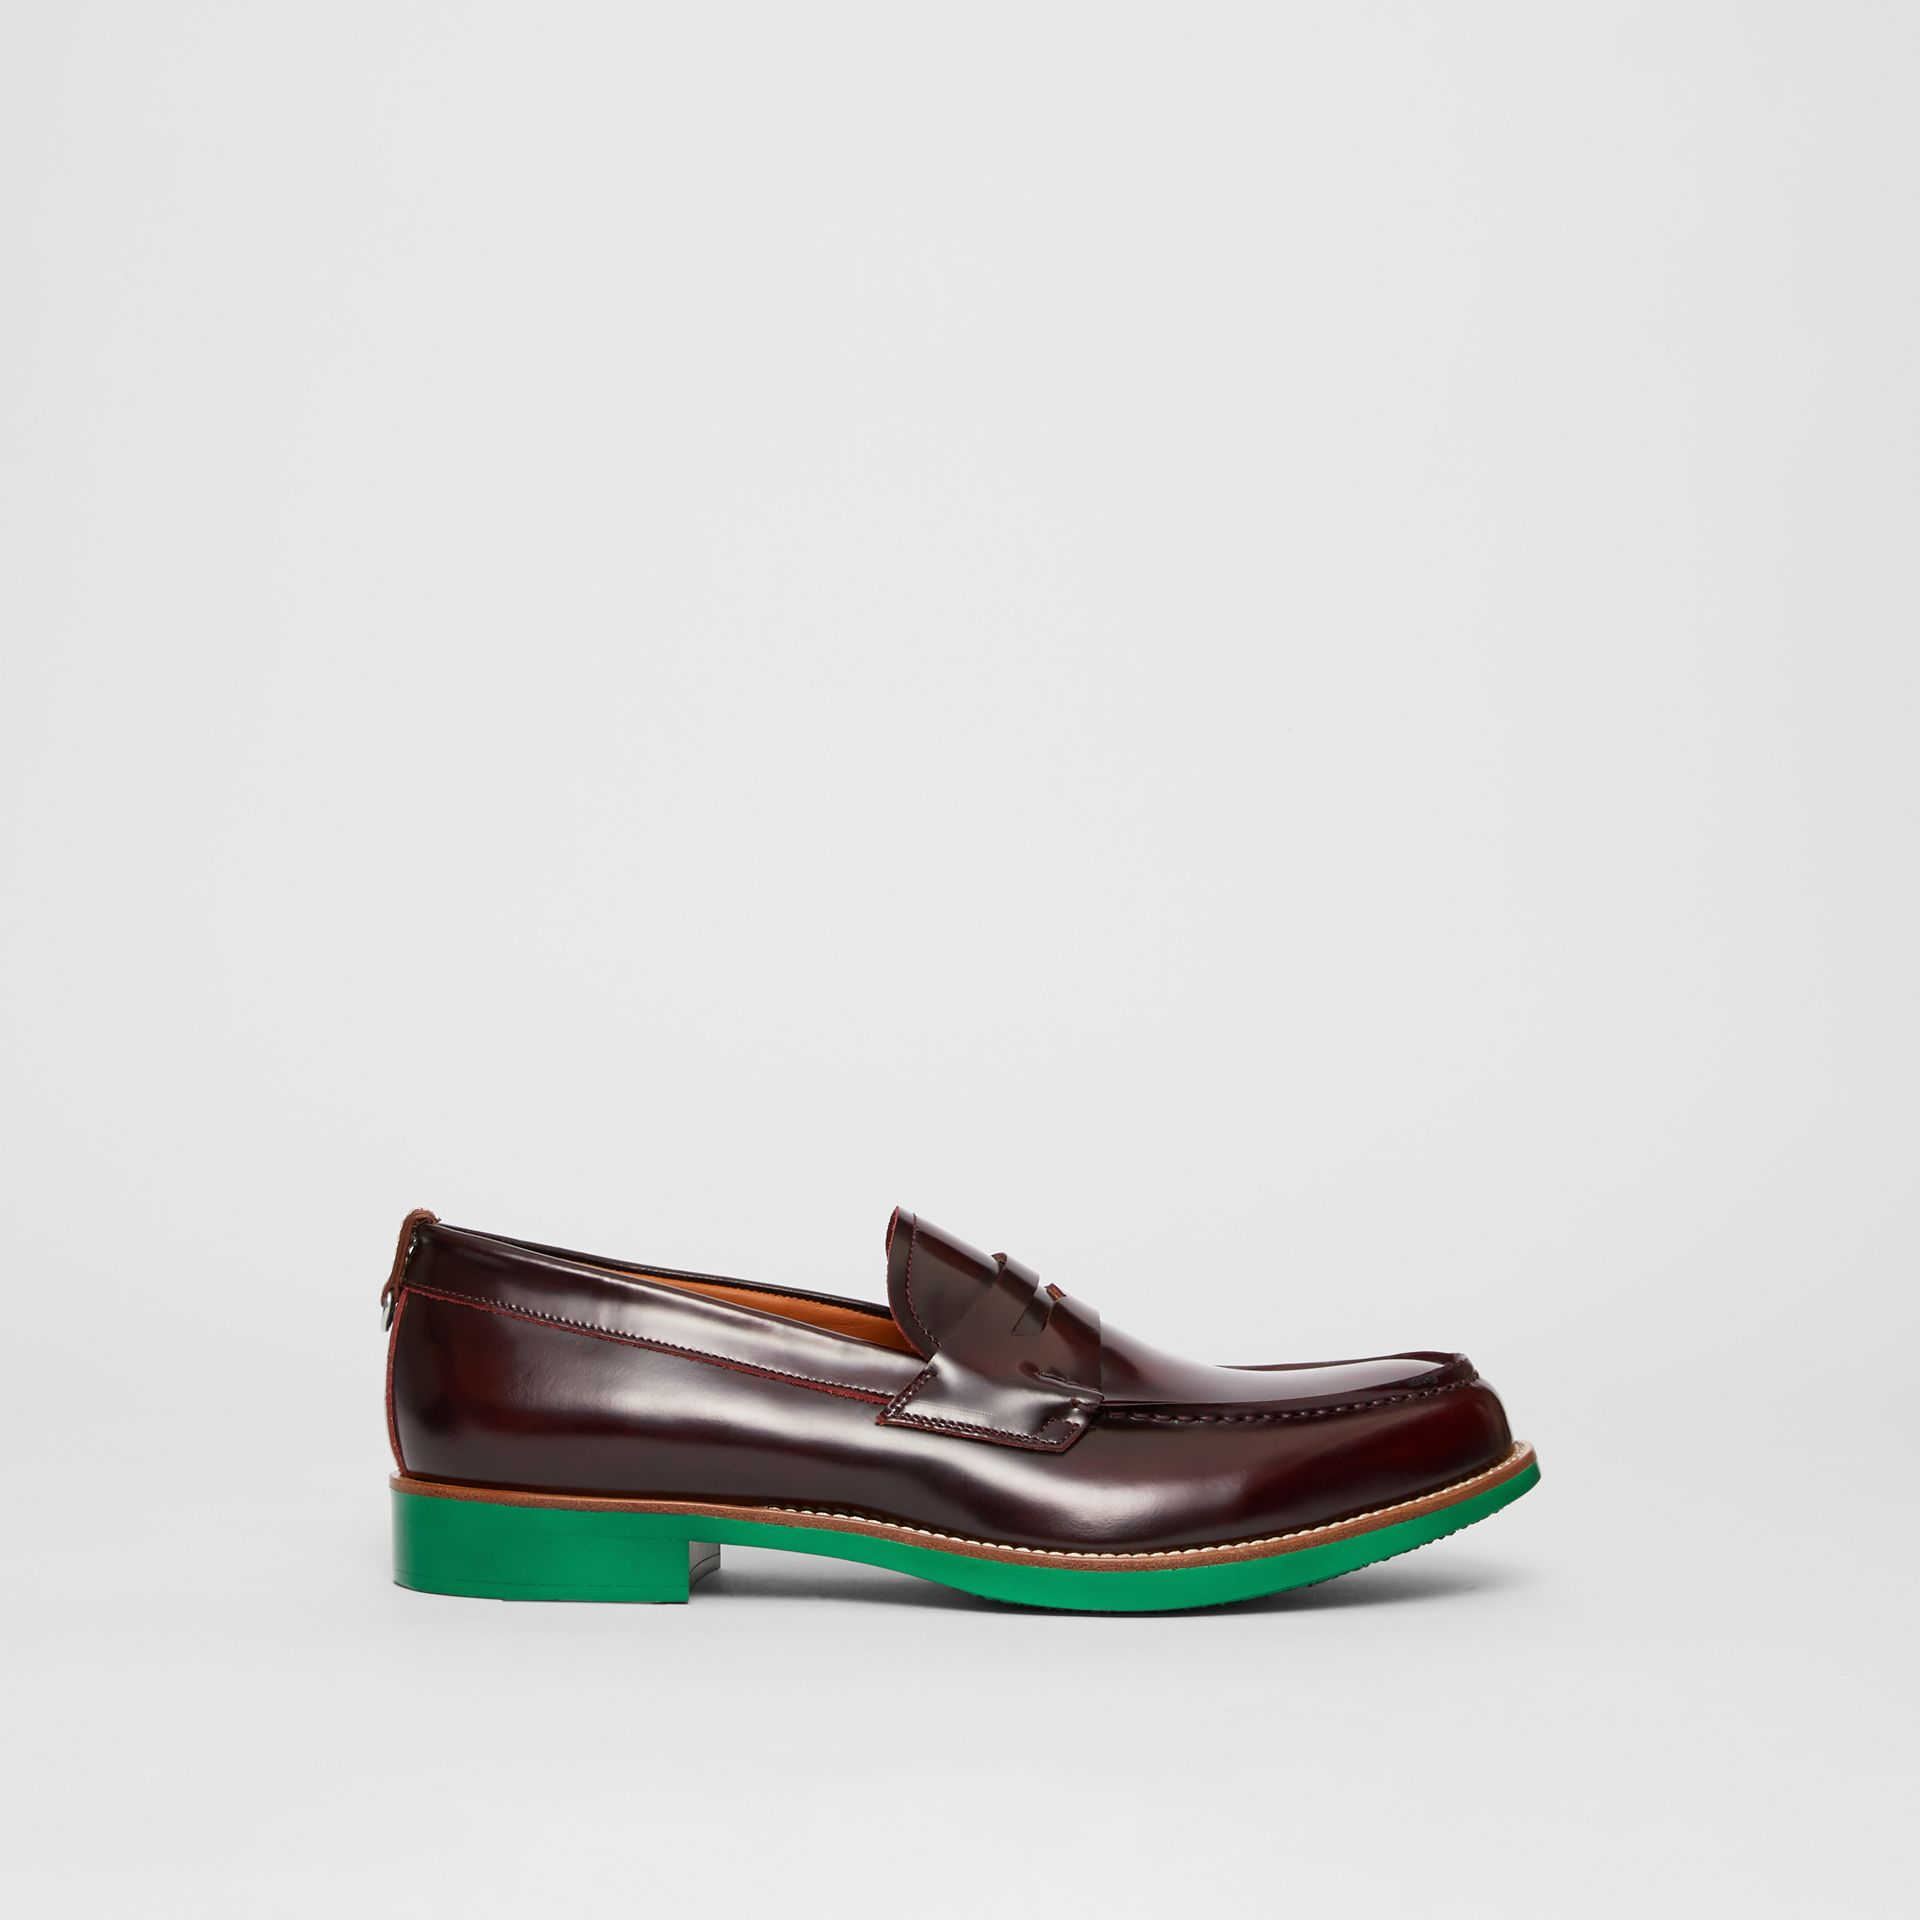 D-ring Detail Contrast Sole Leather Loafers in Bordeaux/green - Men | Burberry - gallery image 5